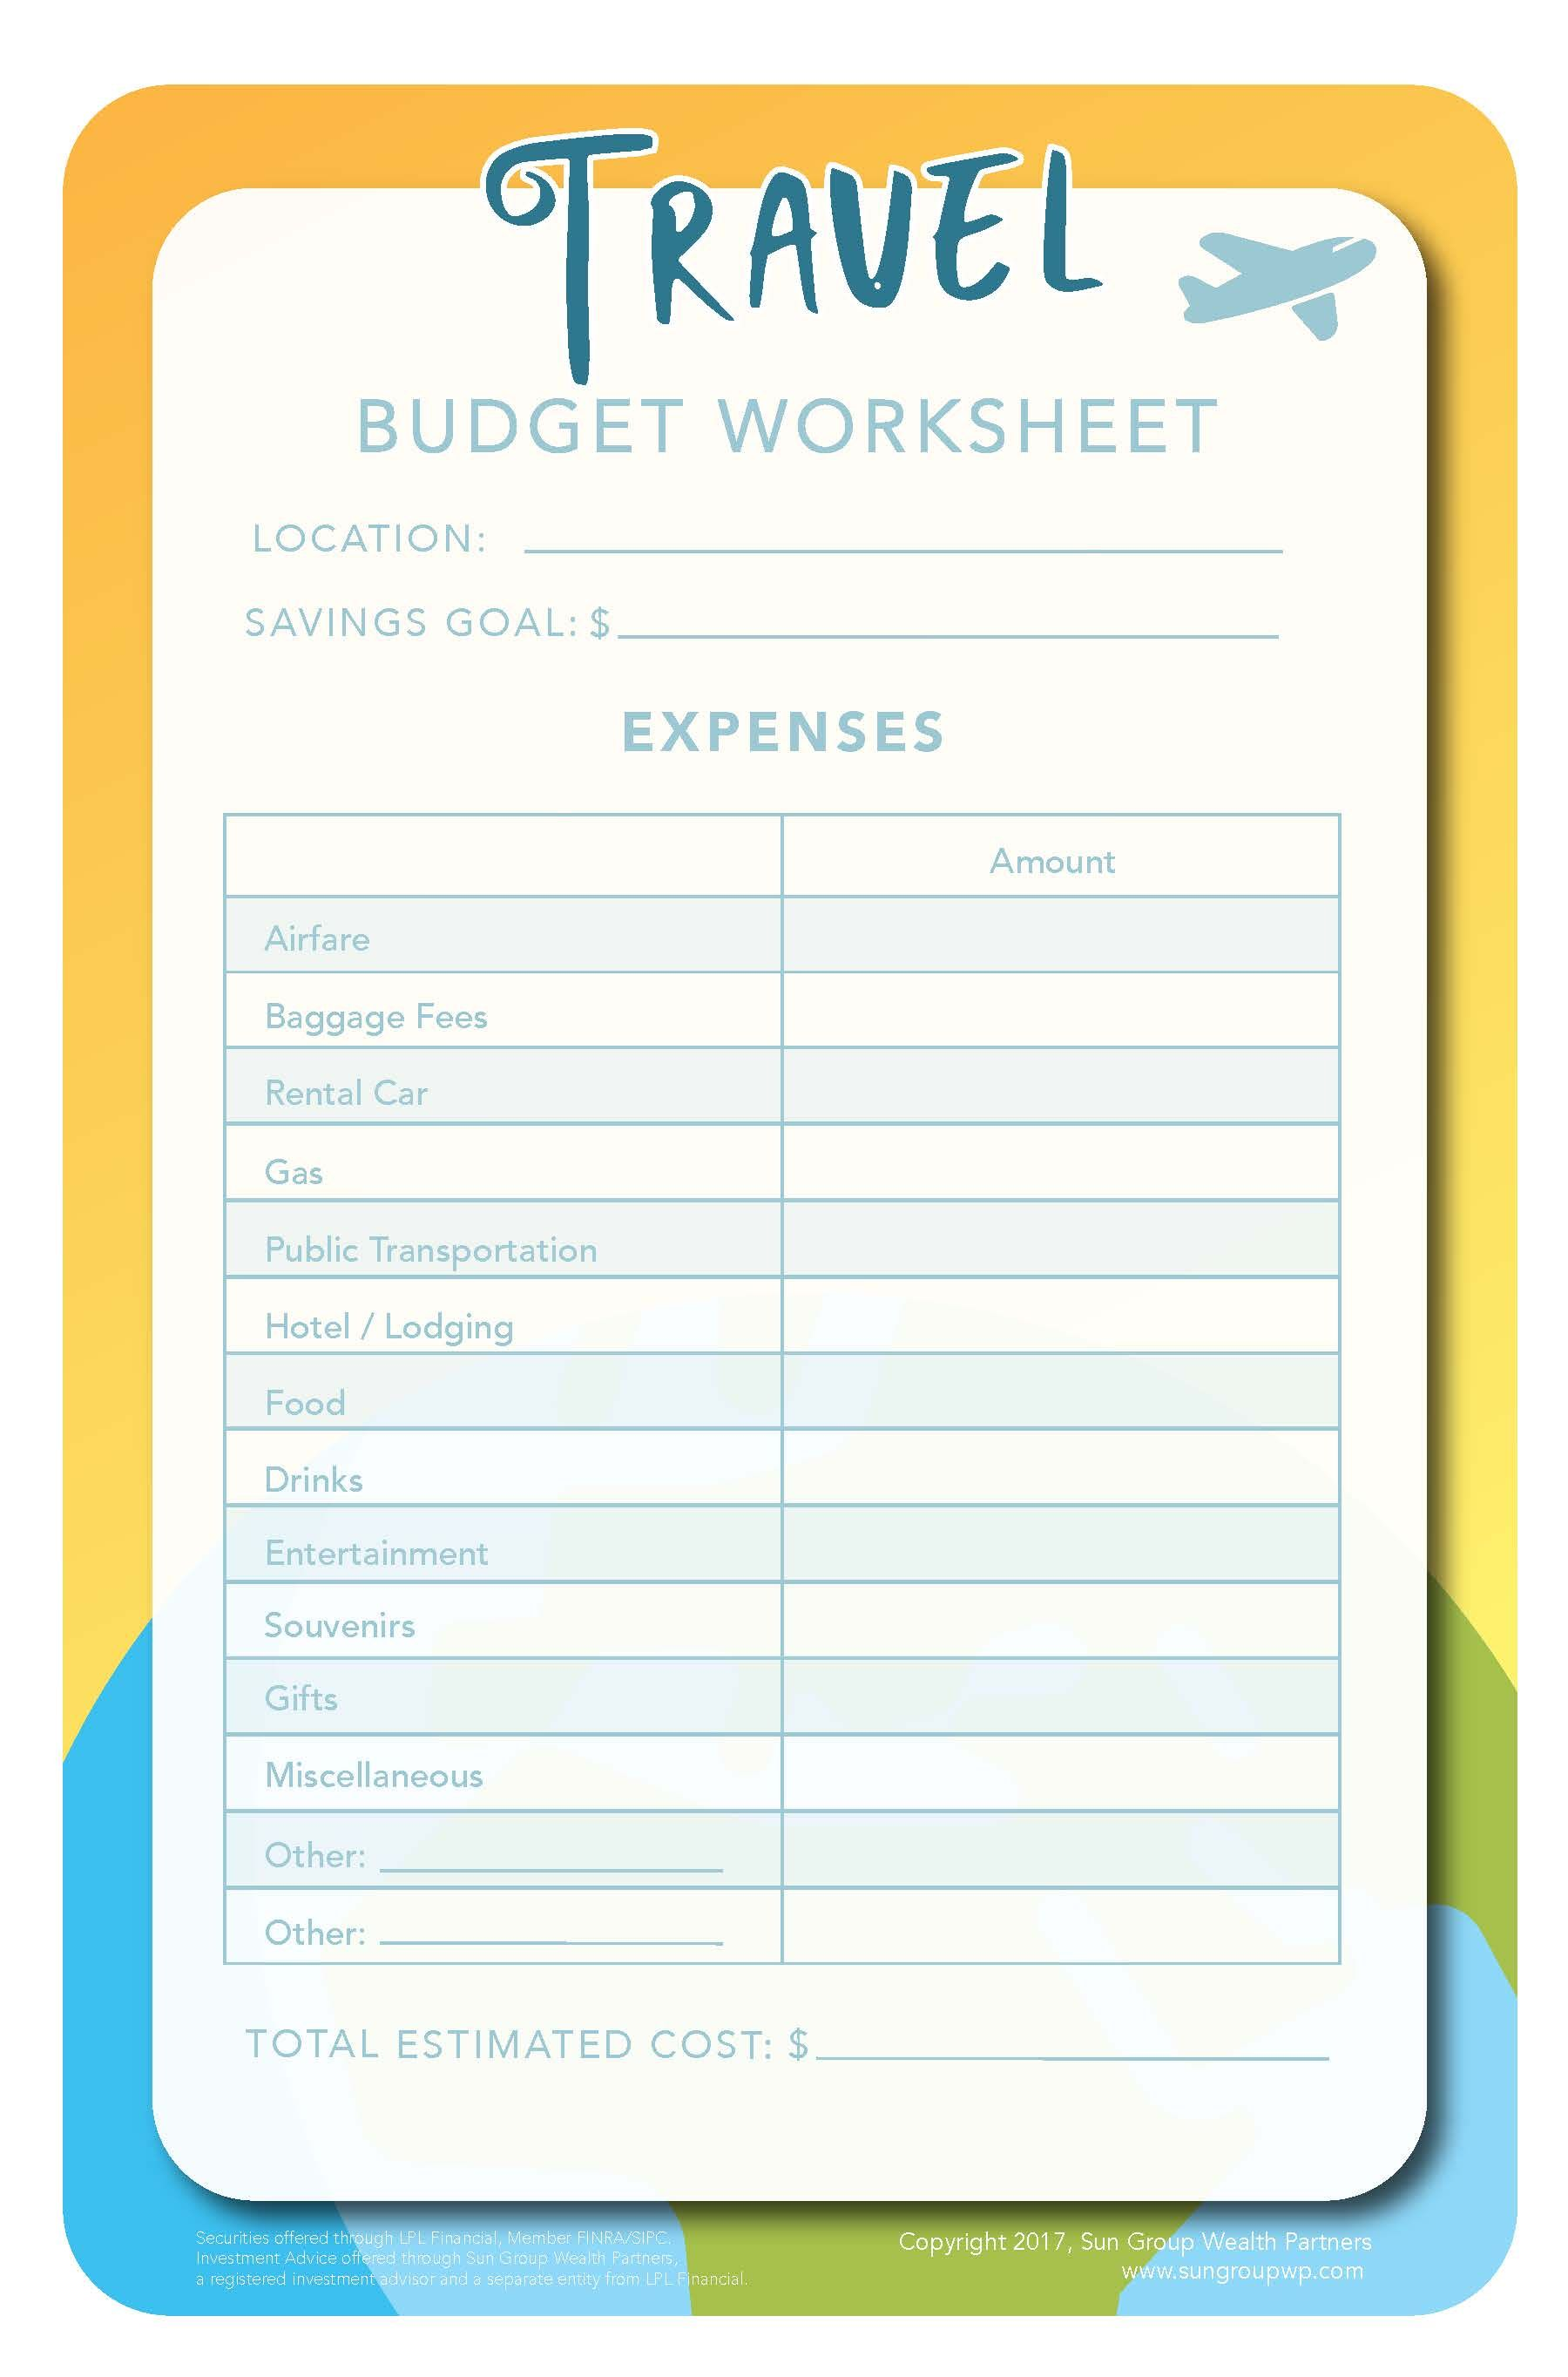 39 Innovative Budget Worksheet Design S